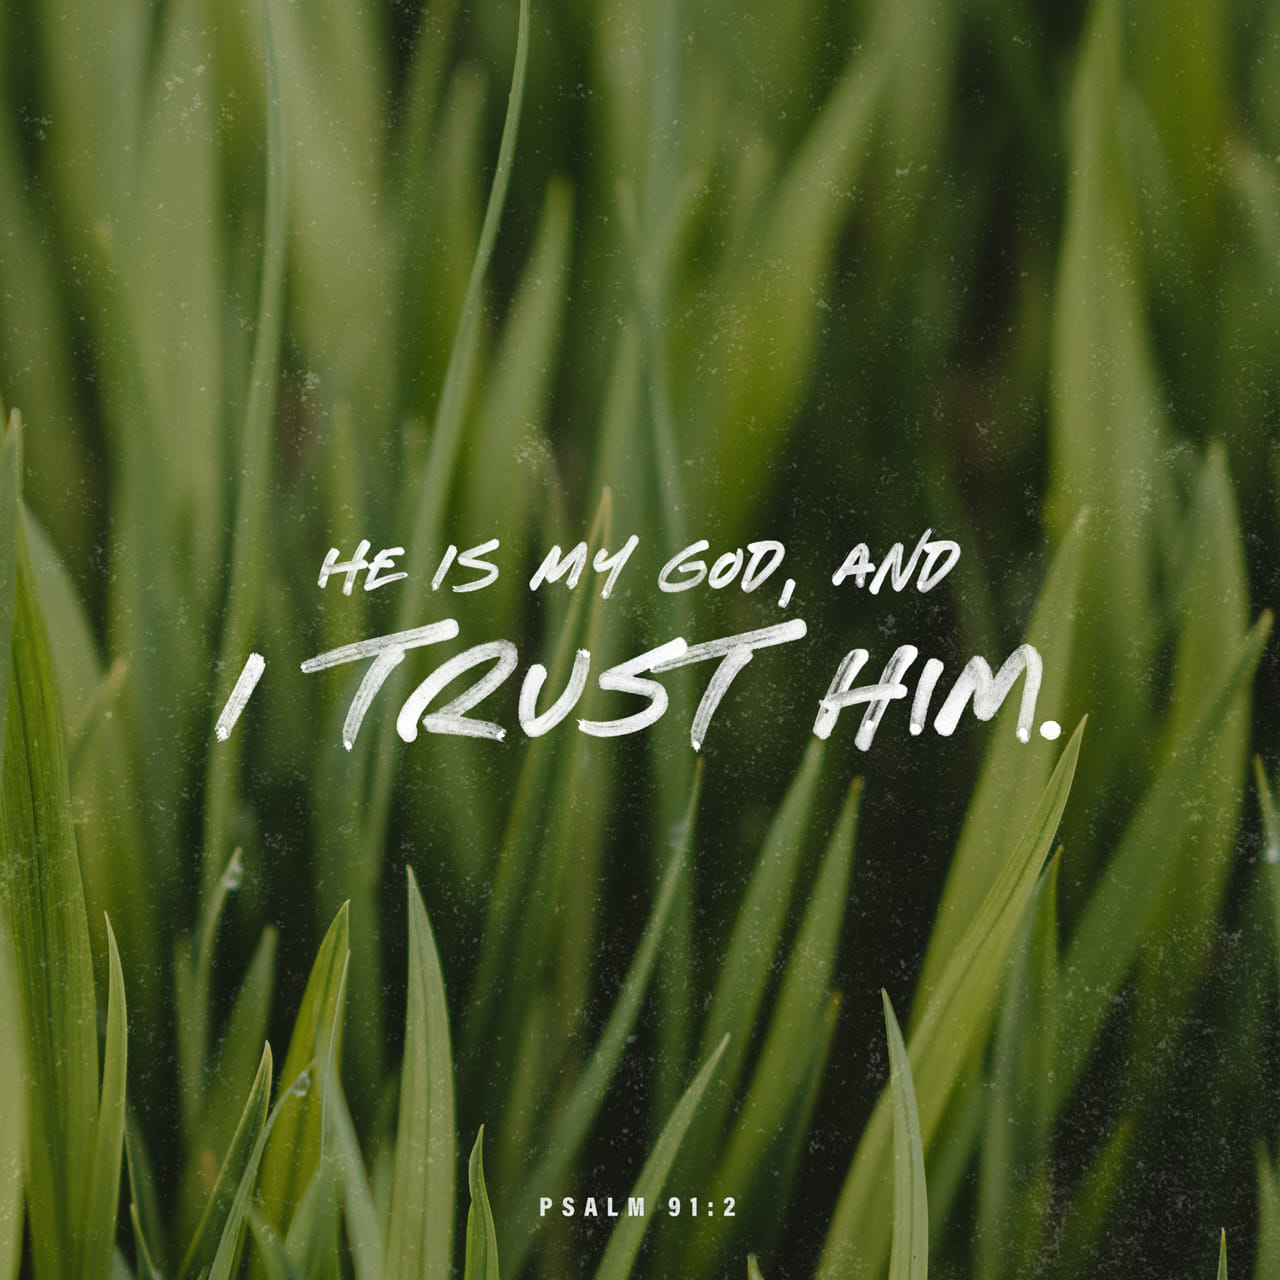 Psalms 91:2 I will say of the LORD, He is my refuge and my fortress: my God; in him will I trust. | King James Version (KJV)